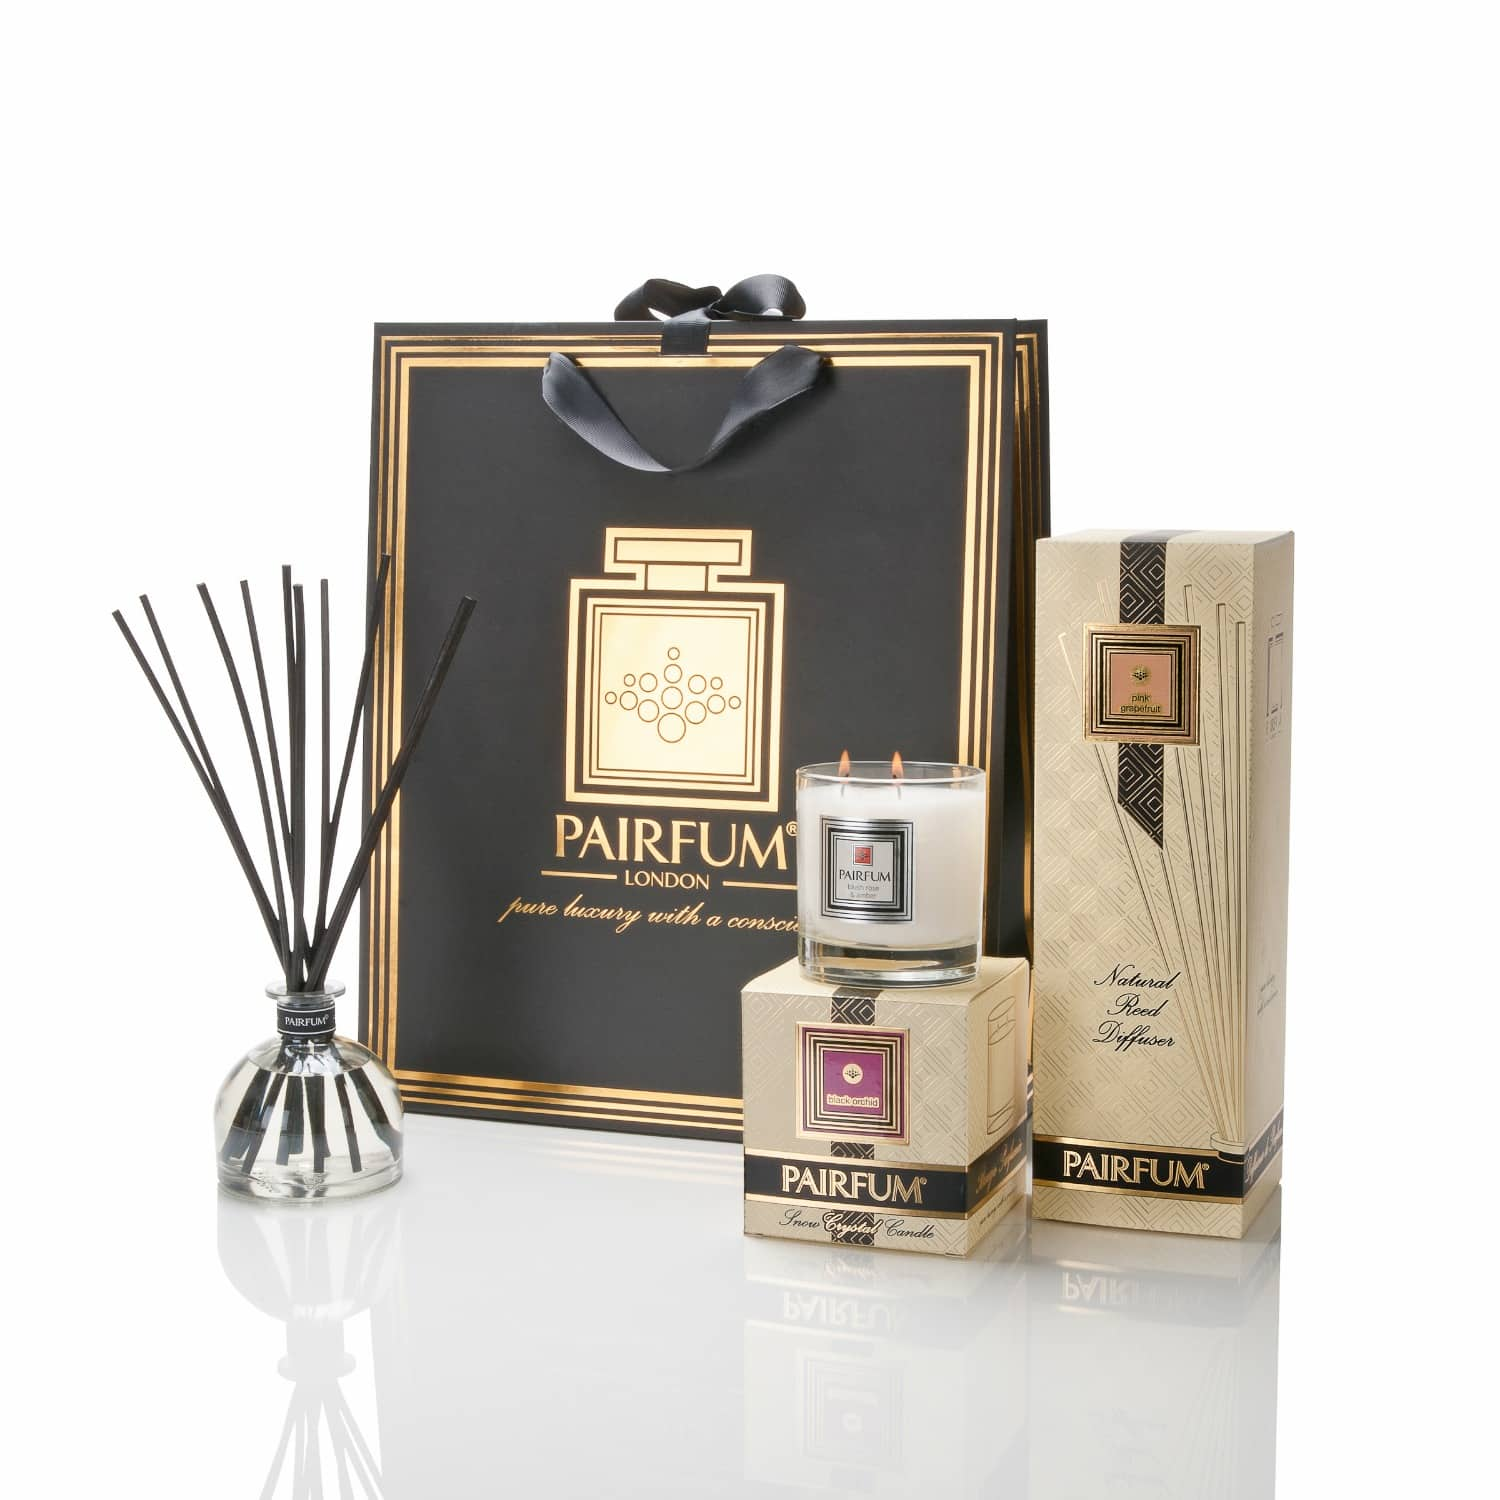 Luxurious large reed diffuser long lasting pairfum for Long lasting home fragrance